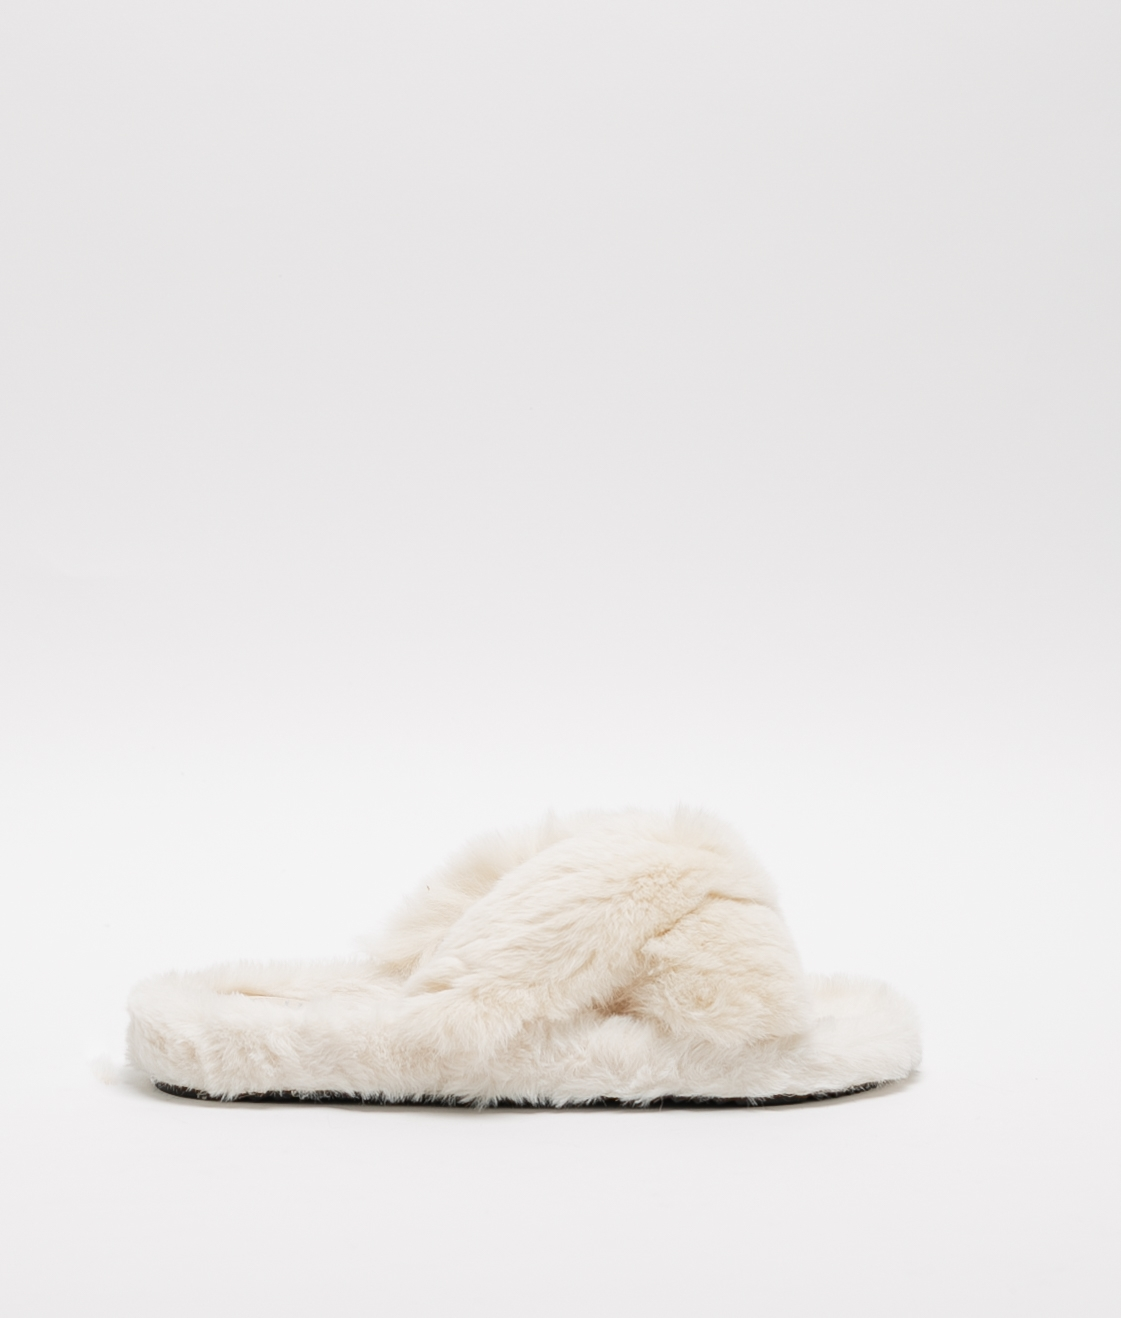 BUNY SLIPPERS - BEIGE